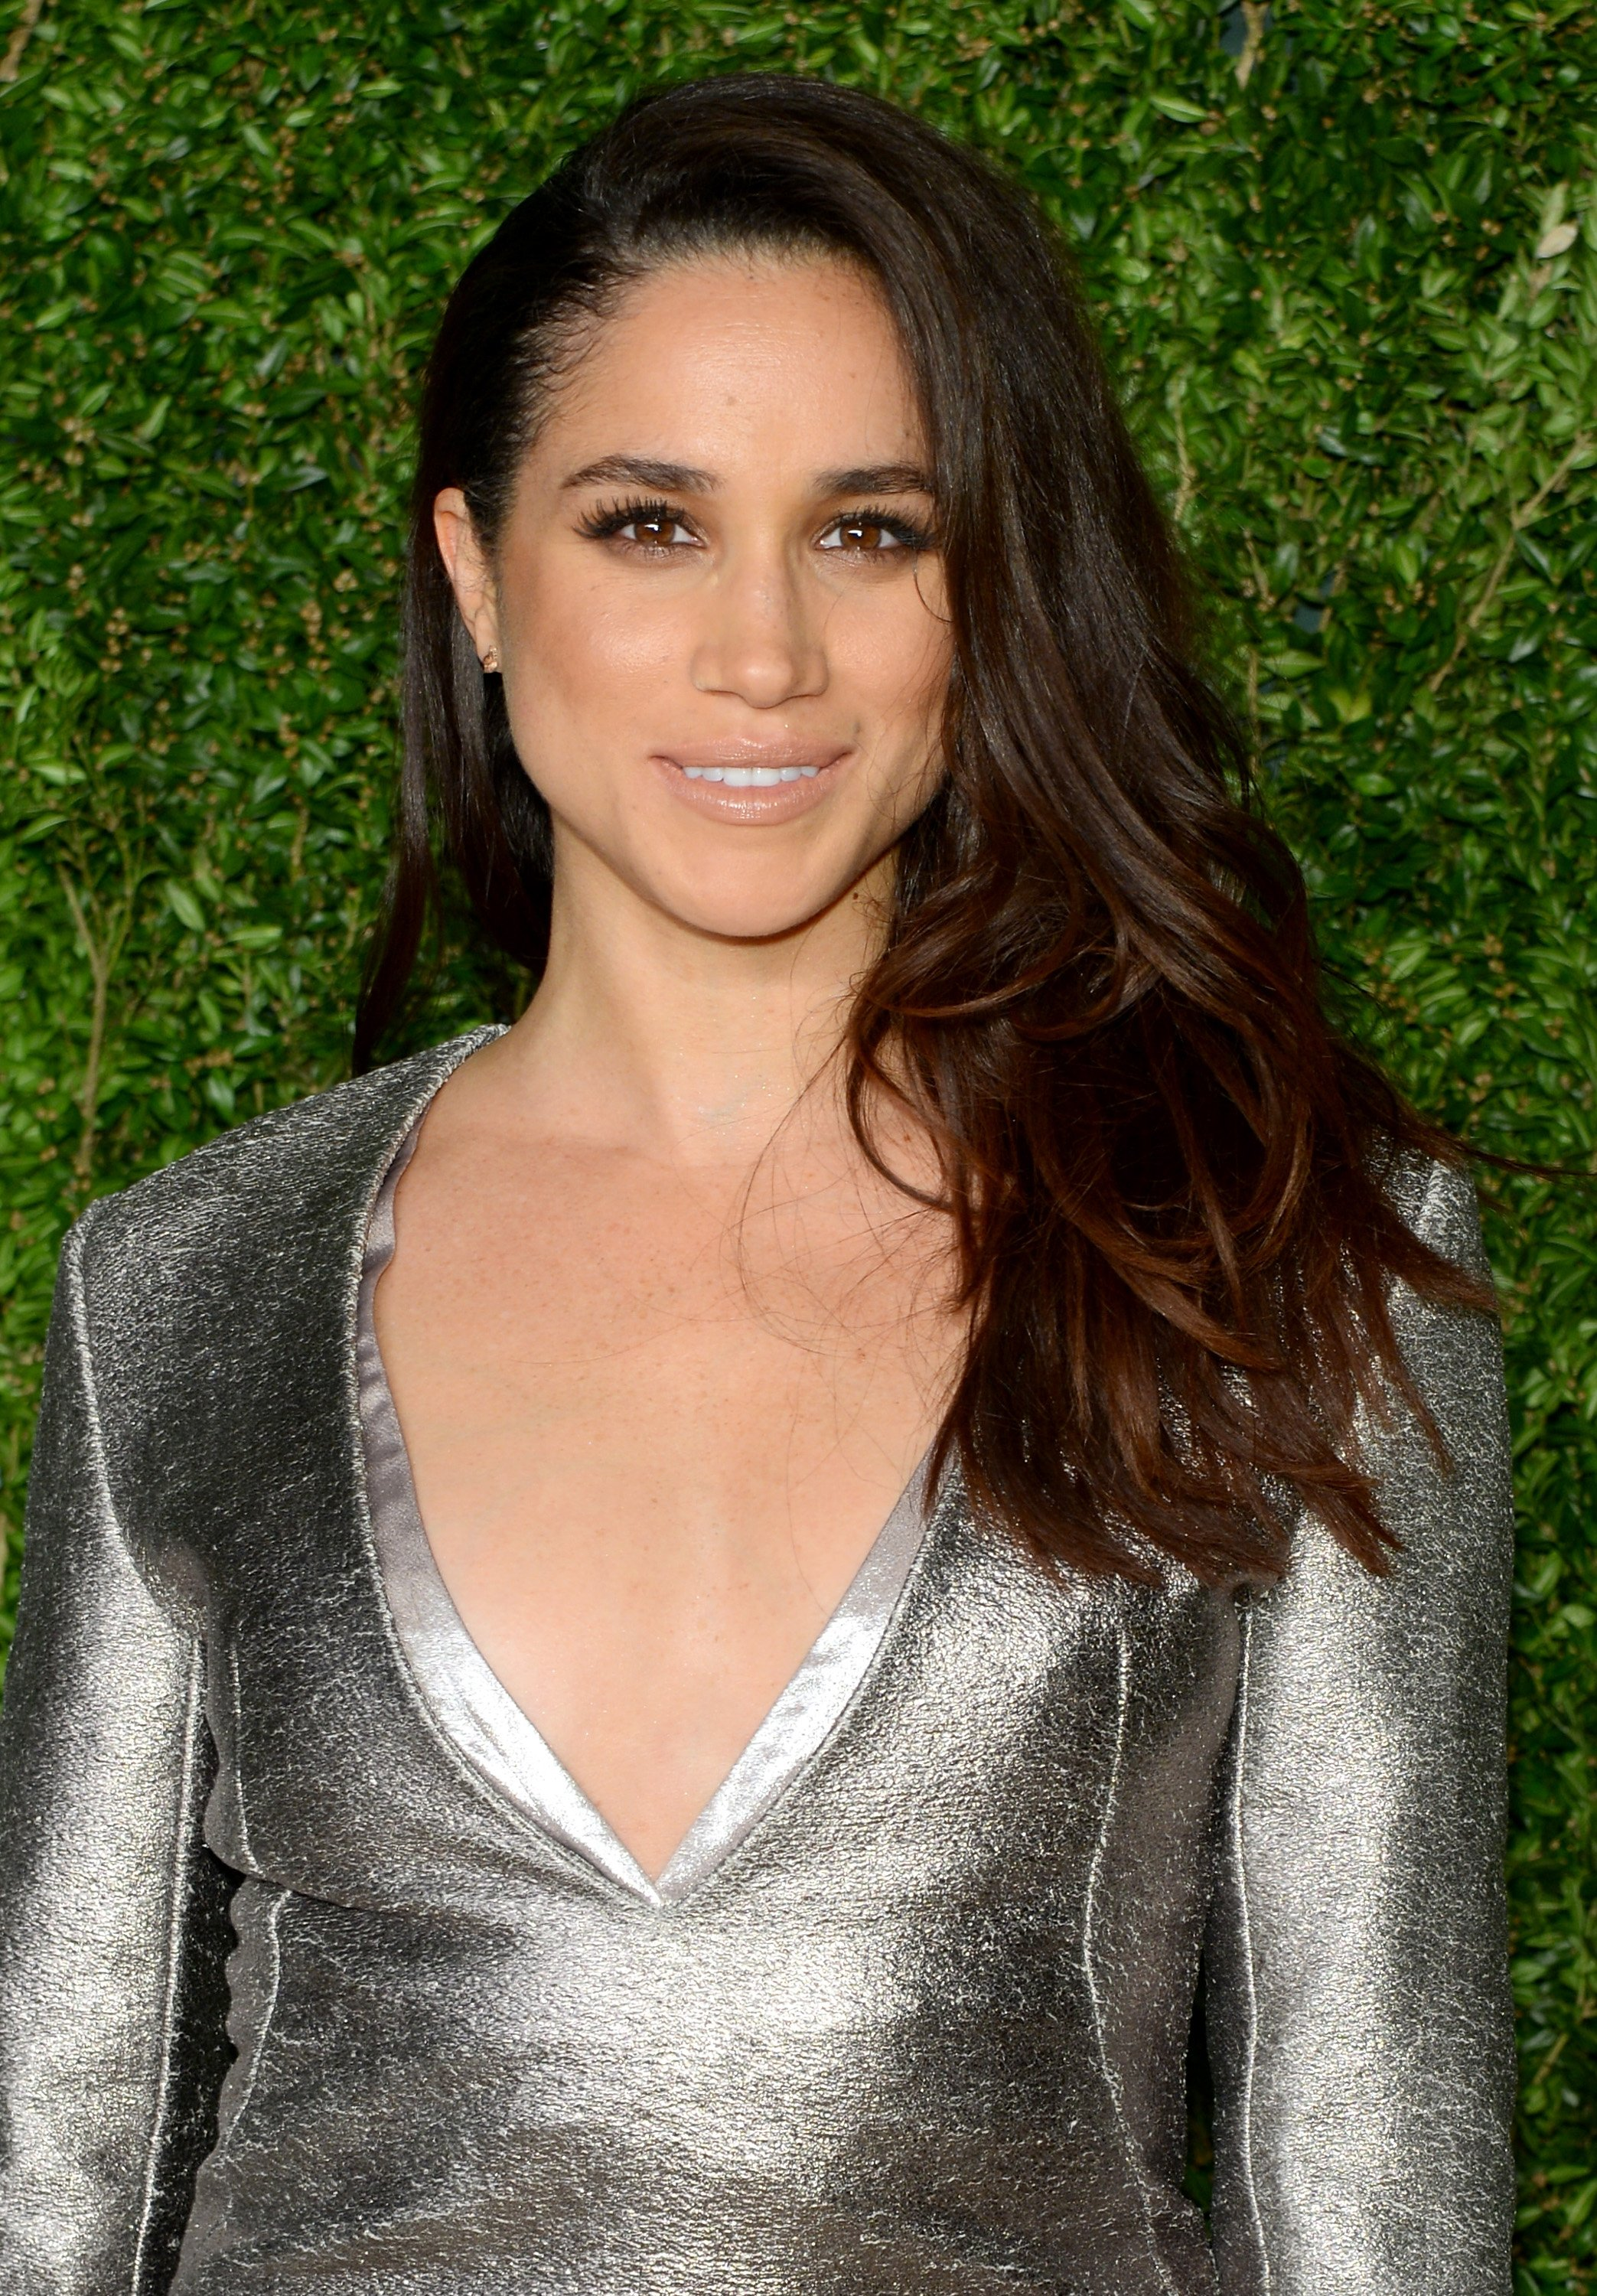 Meghan Markle pictured at the 12th annual CFDA/Vogue Fashion Fund Awards, 2015, New York City.   Photo: Getty Images